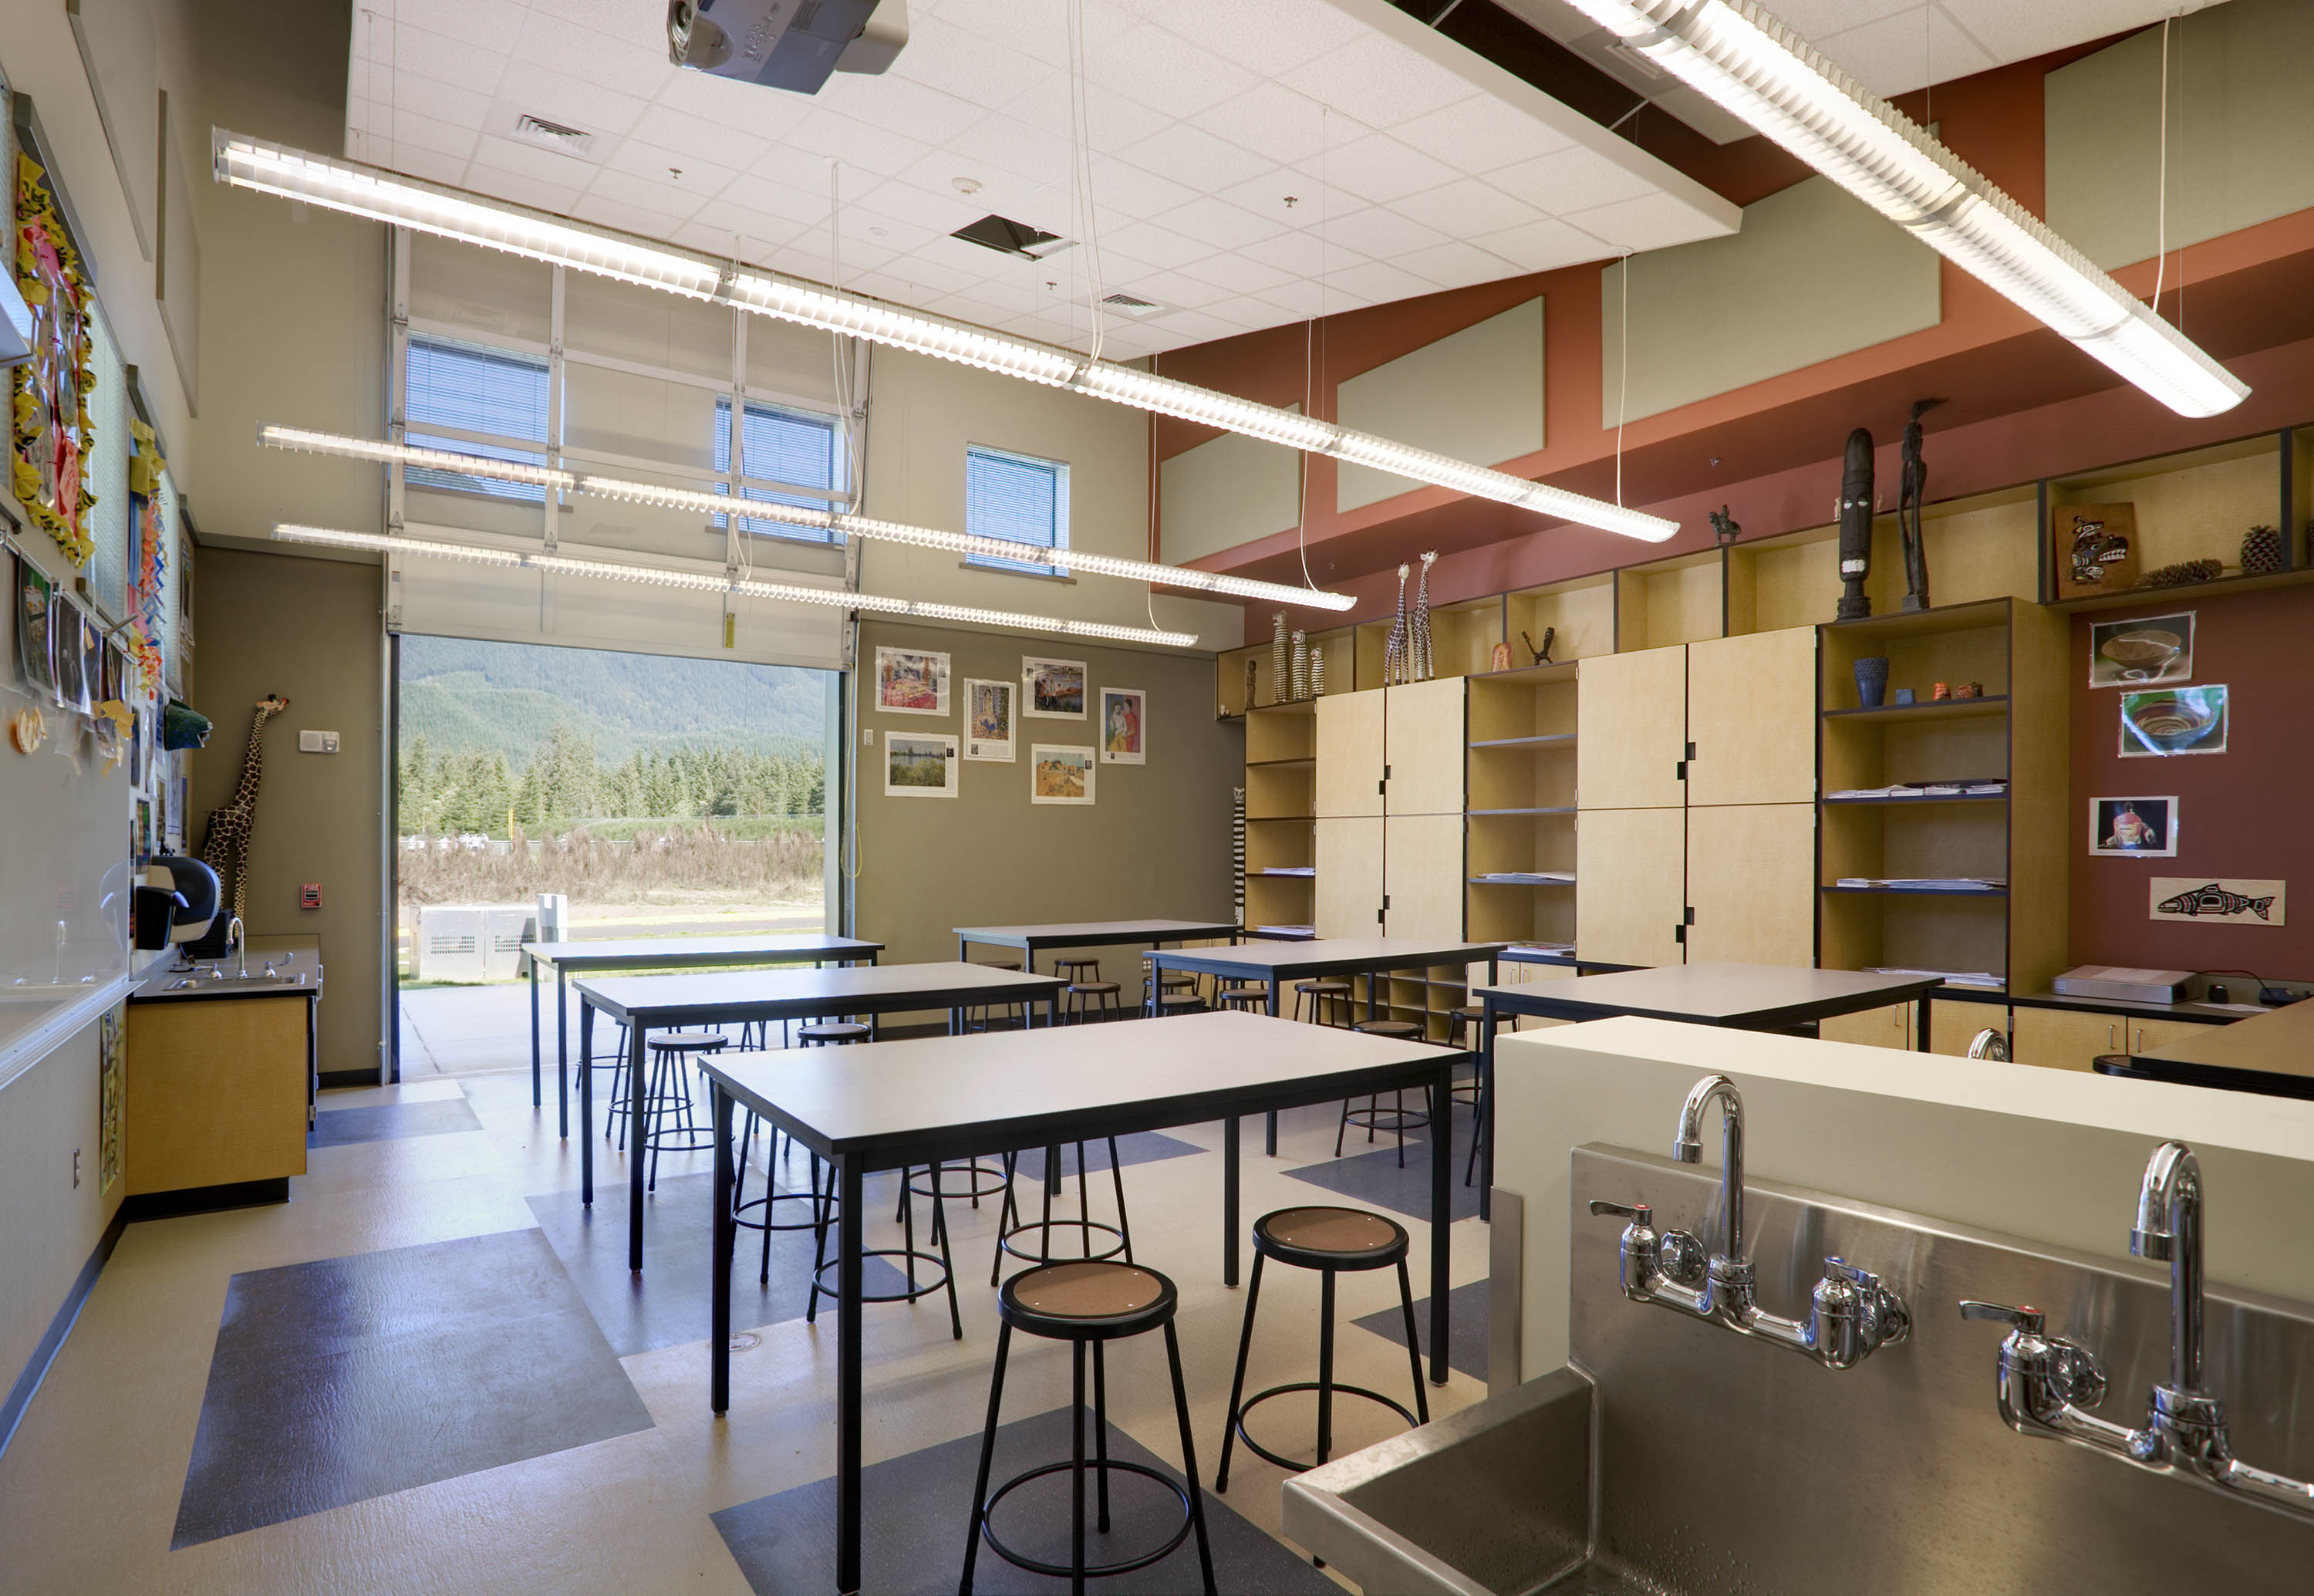 The art classroom with the garage door open, views of the mountain partially visible.